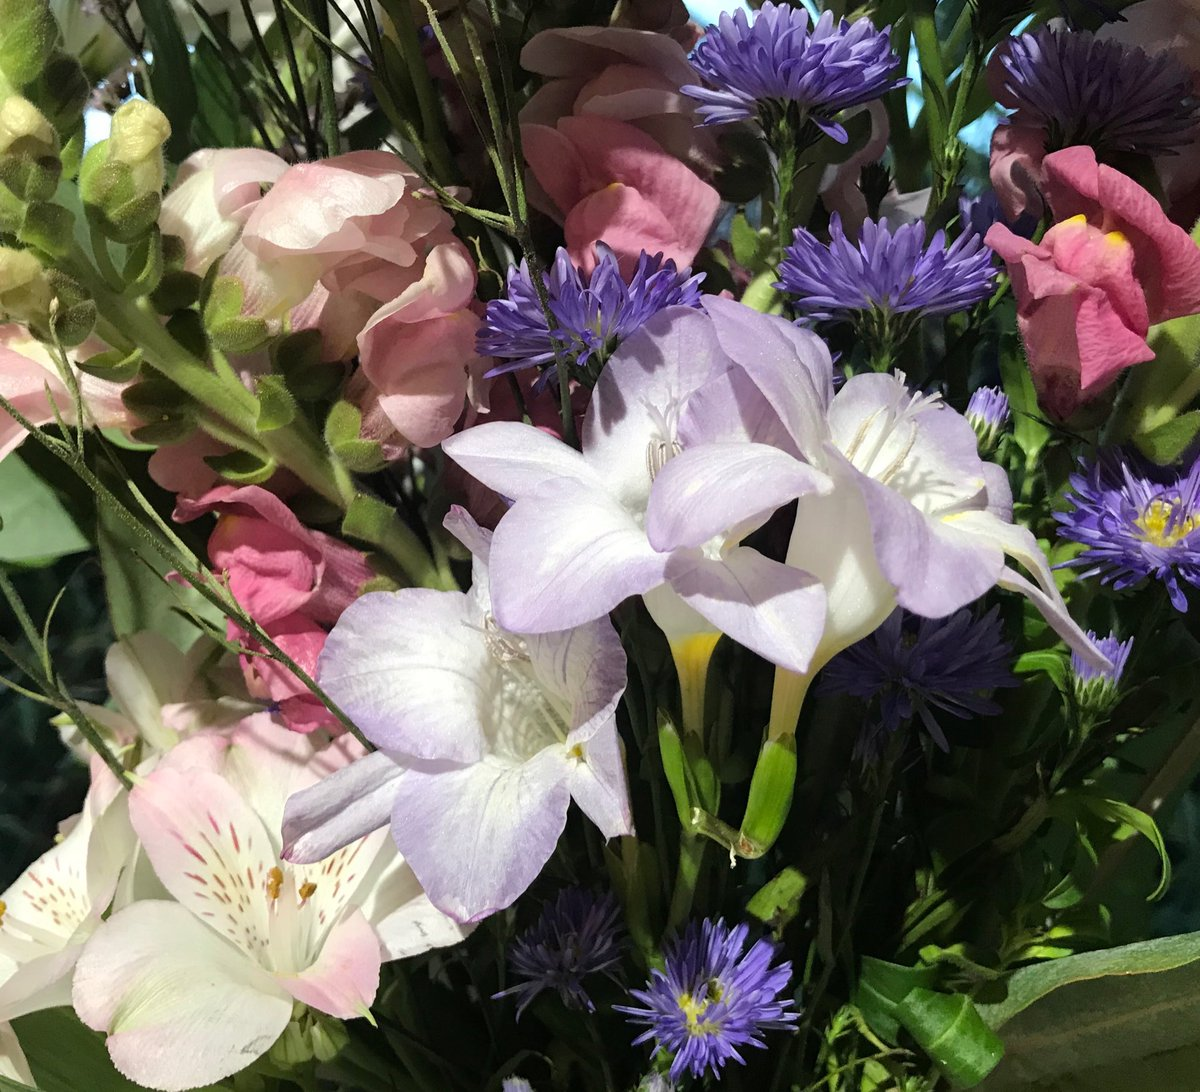 Helen Mccarthy On Twitter Some Beautiful Flowers For You My